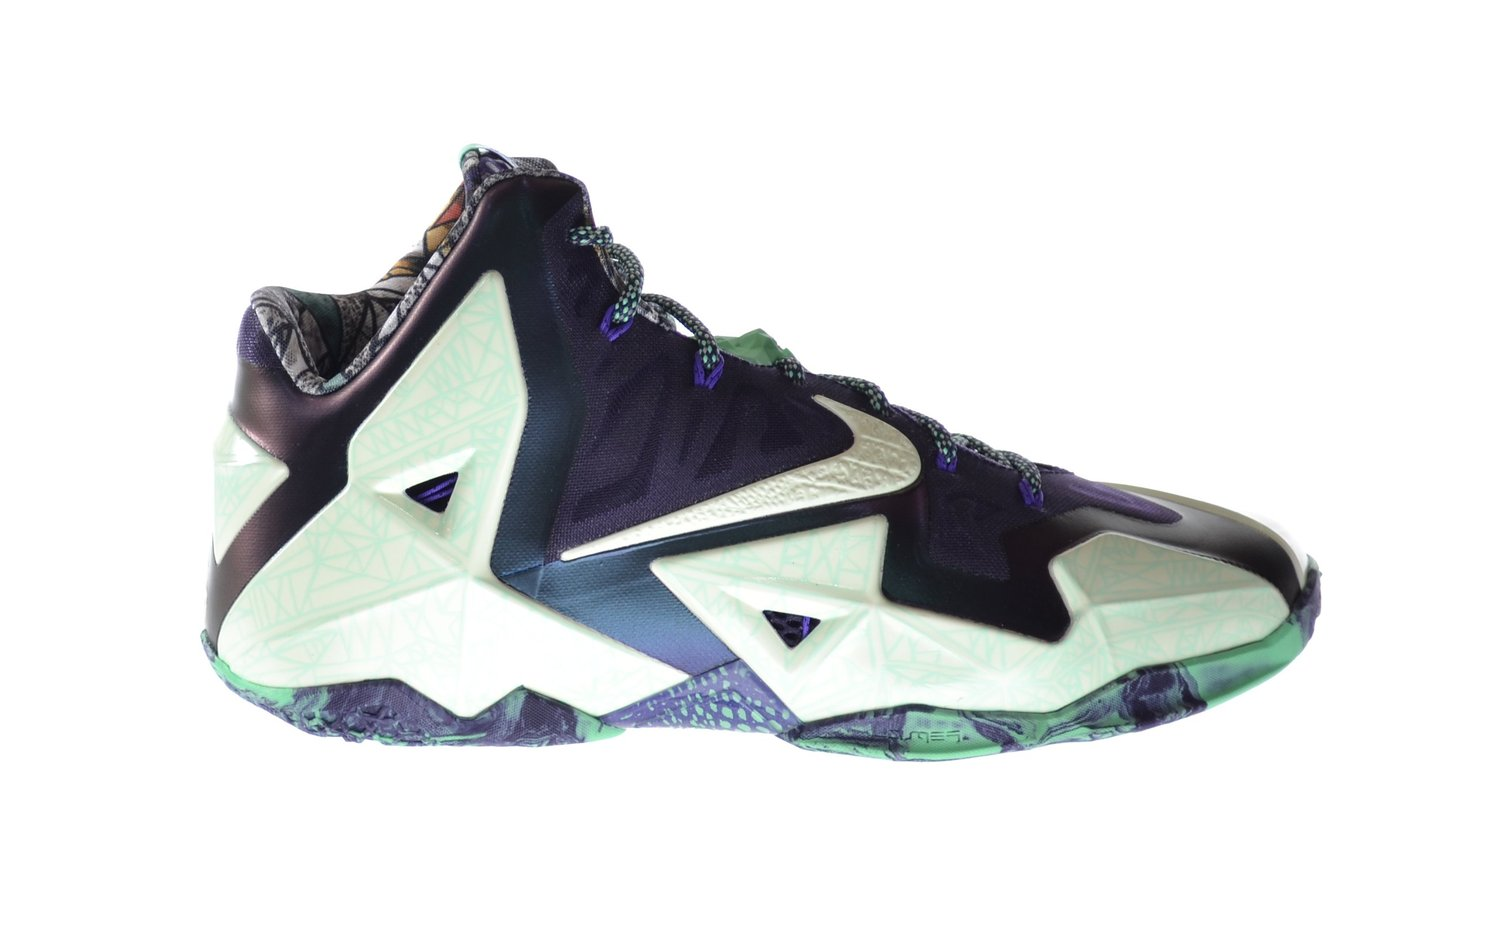 official photos 647ad 5aac4 Nike Lebron XI All Star